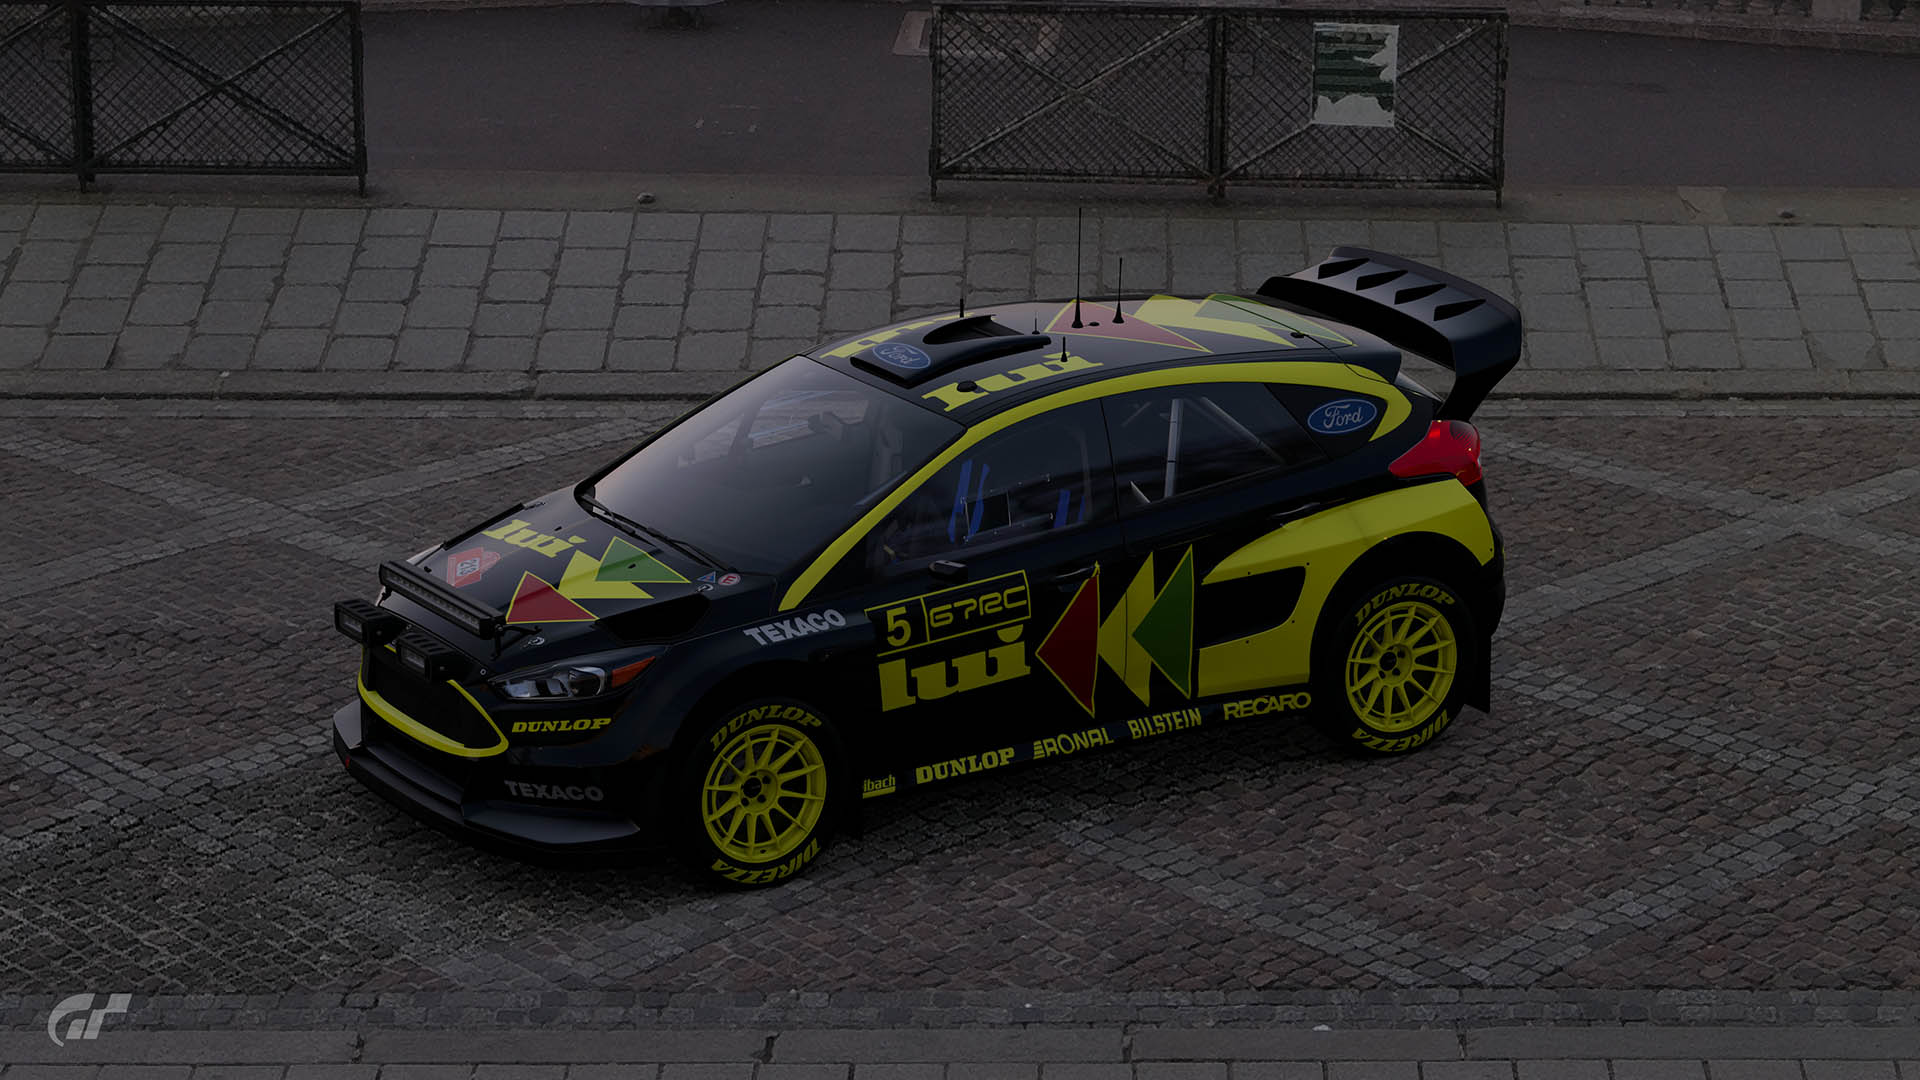 lui rally ford focus grb livery double  motorsport